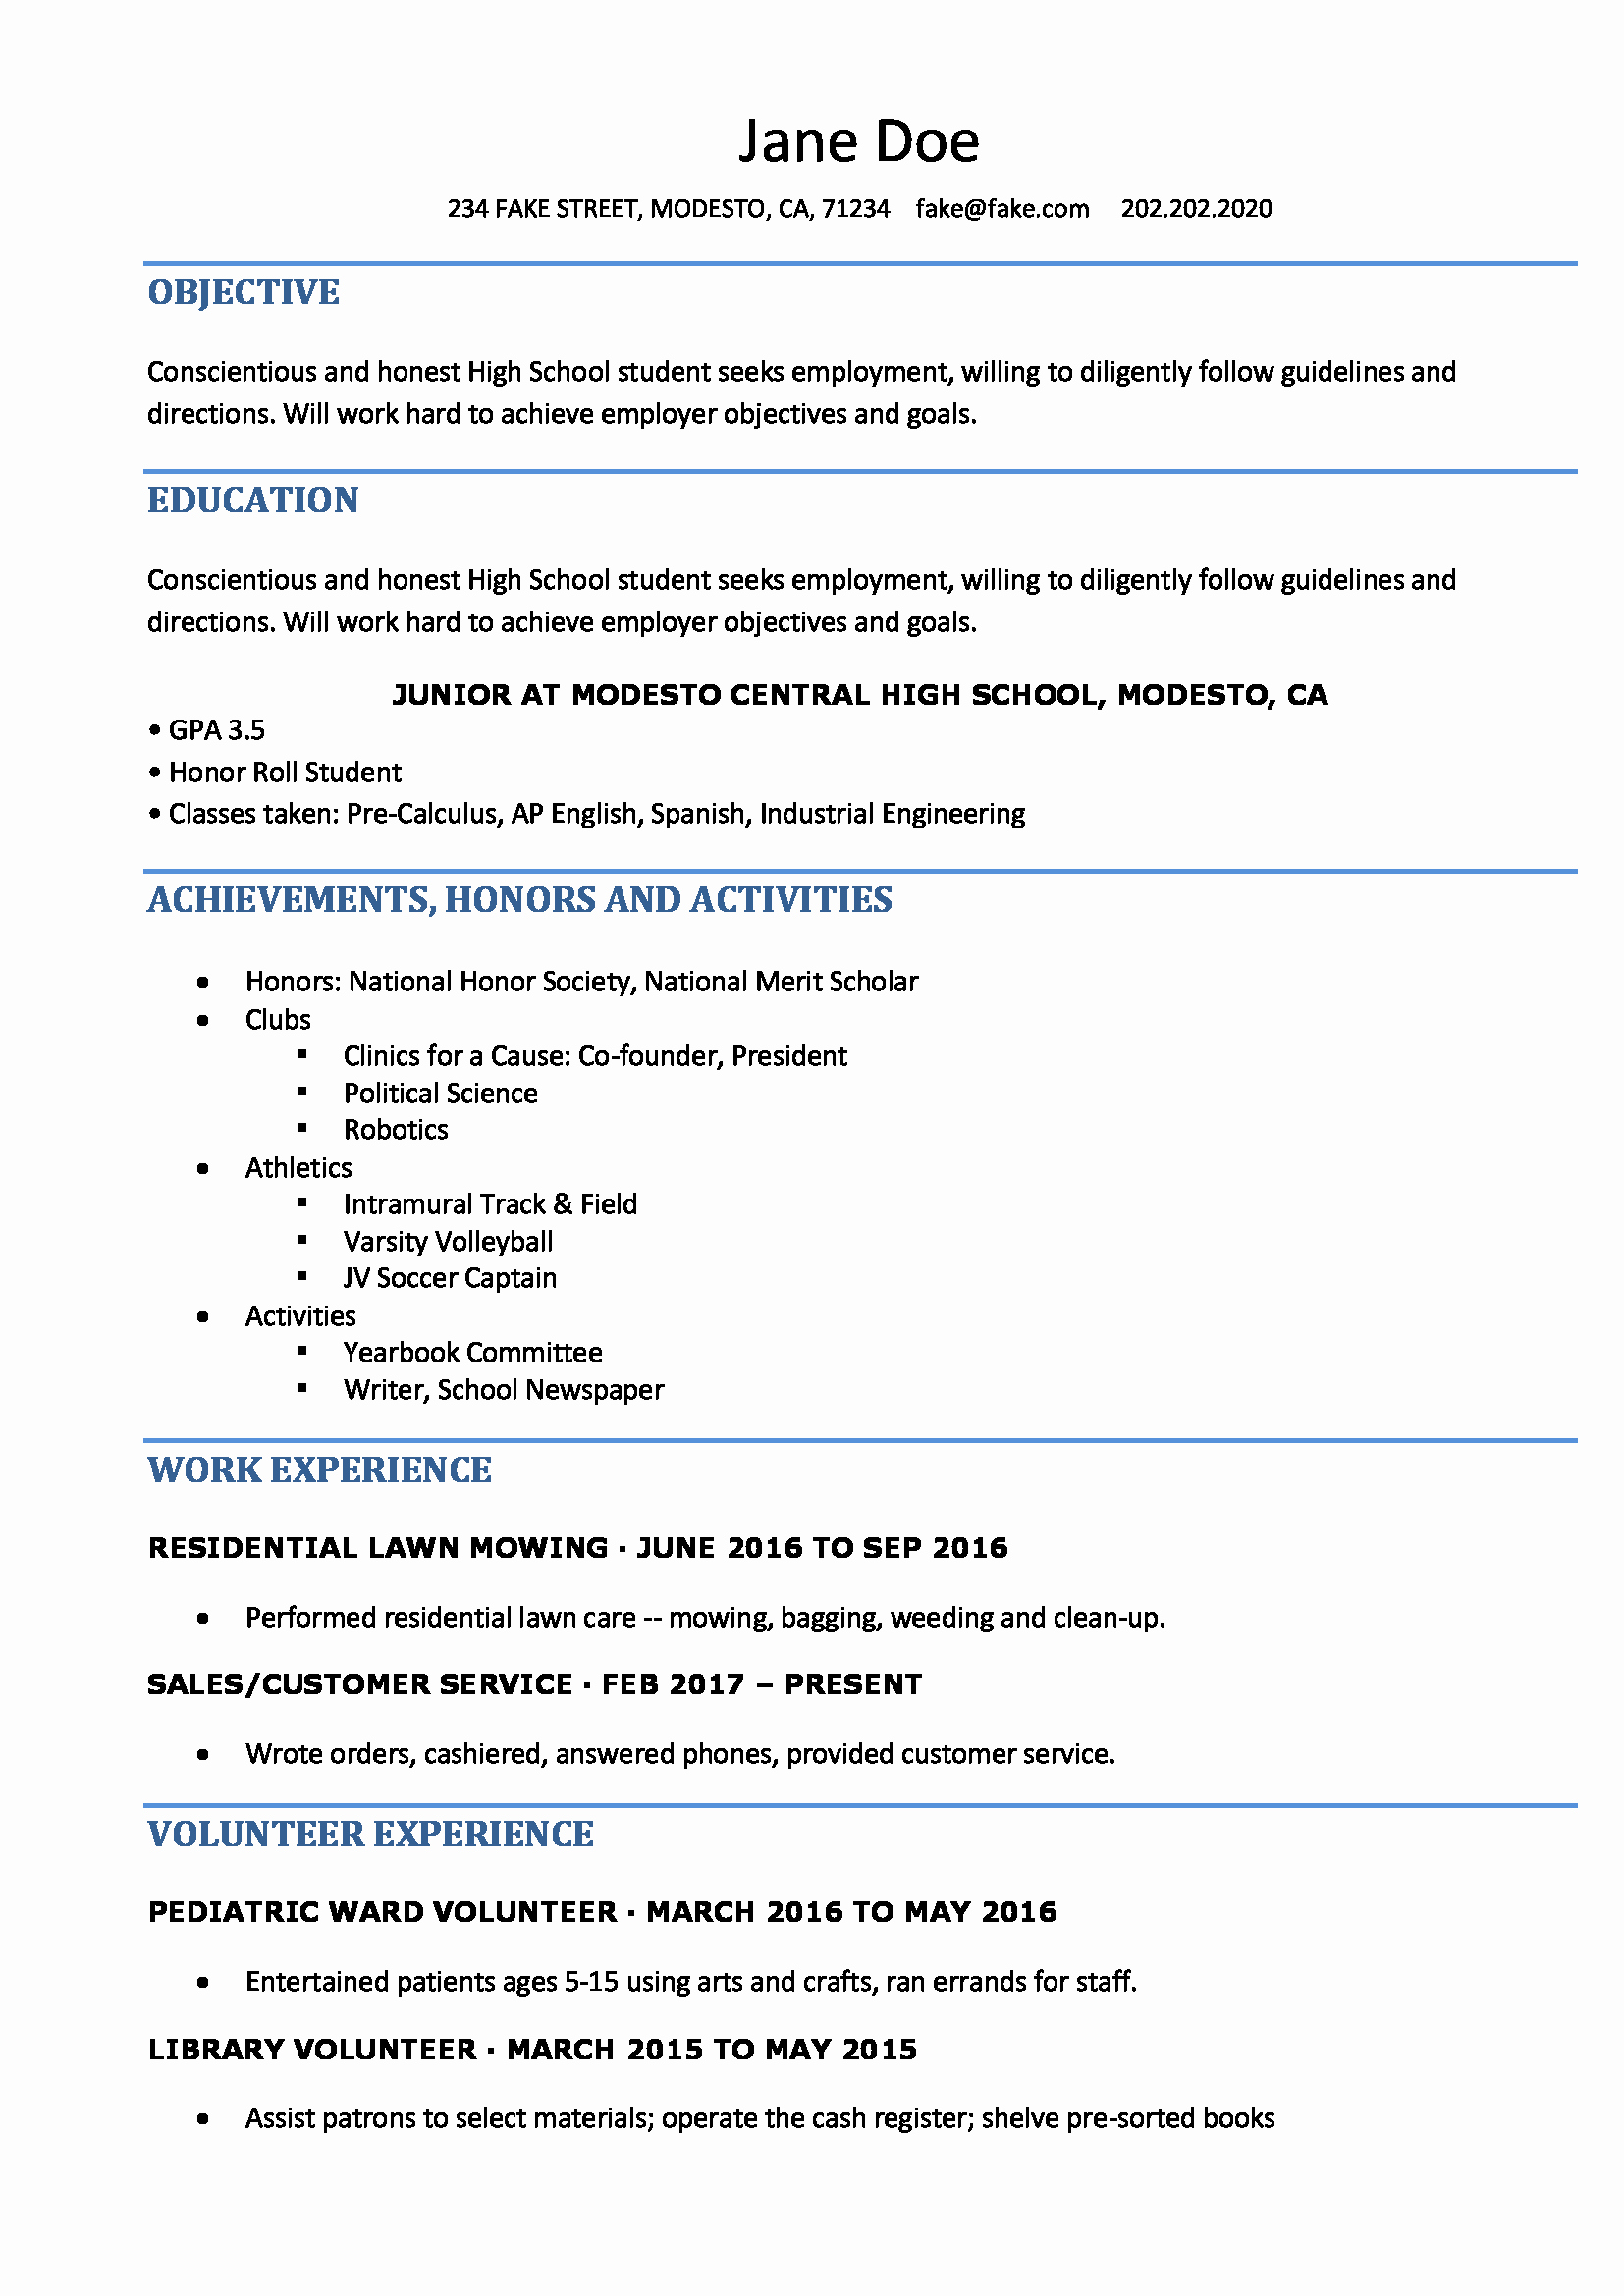 Free Resume Templates for Students Unique High School Resume Resumes Perfect for High School Students